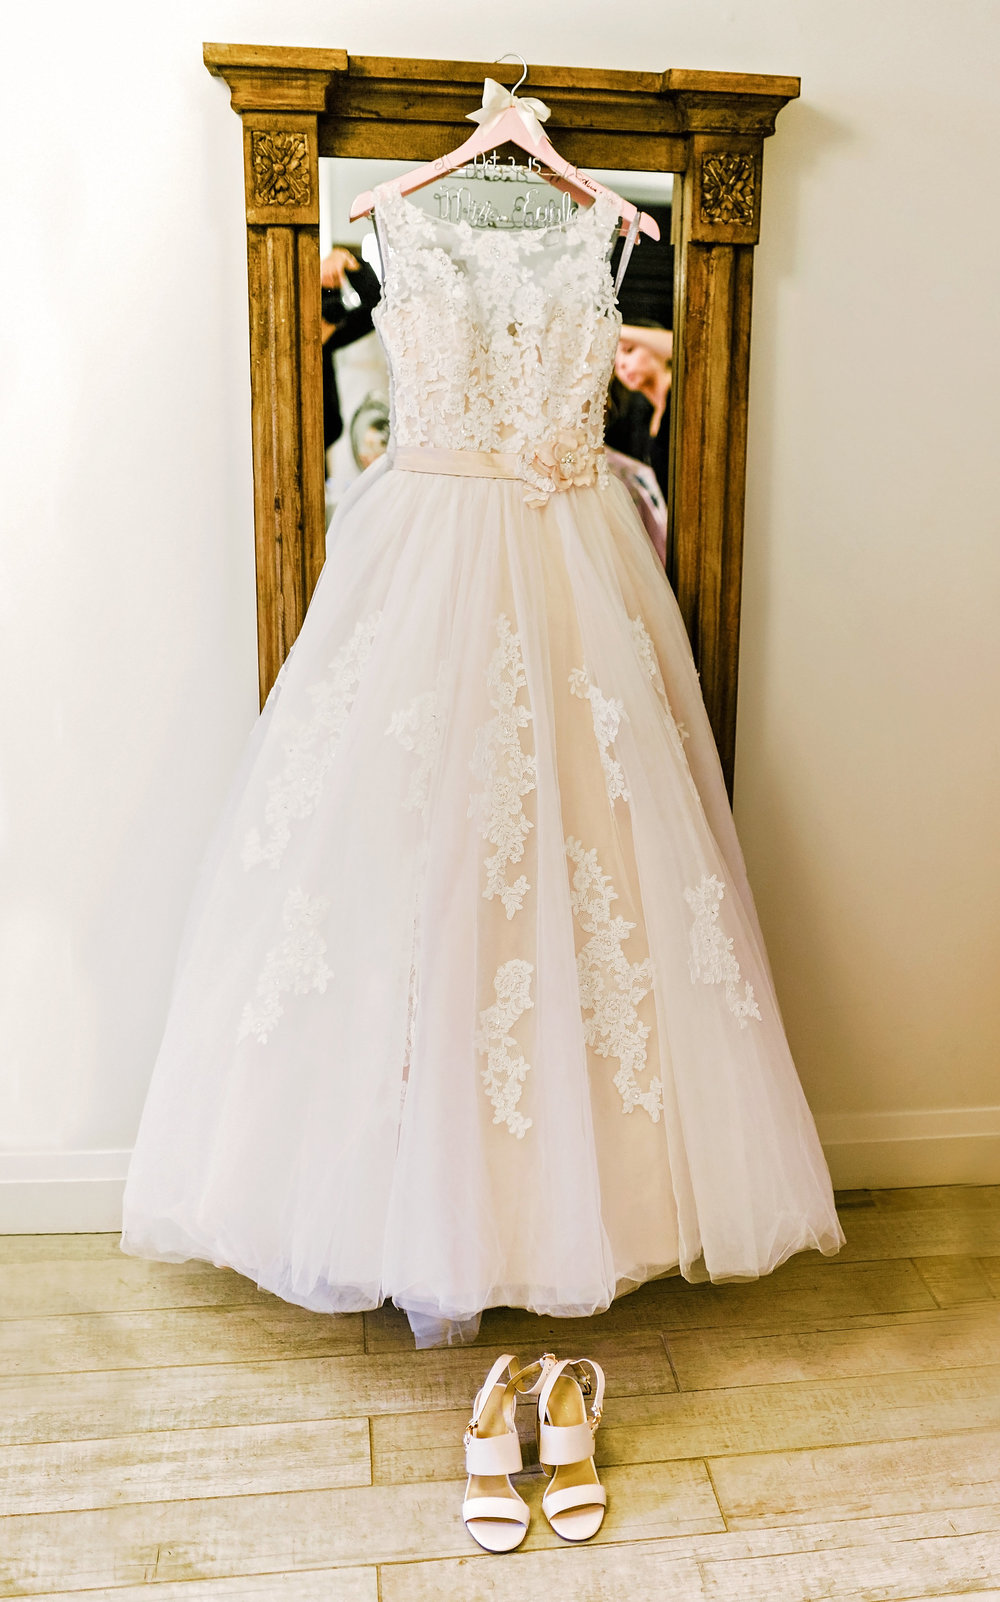 Bridal ballgown displayed in the St. Marys  Ballroom  Bridal Suite. Photography: Melissa Avey.